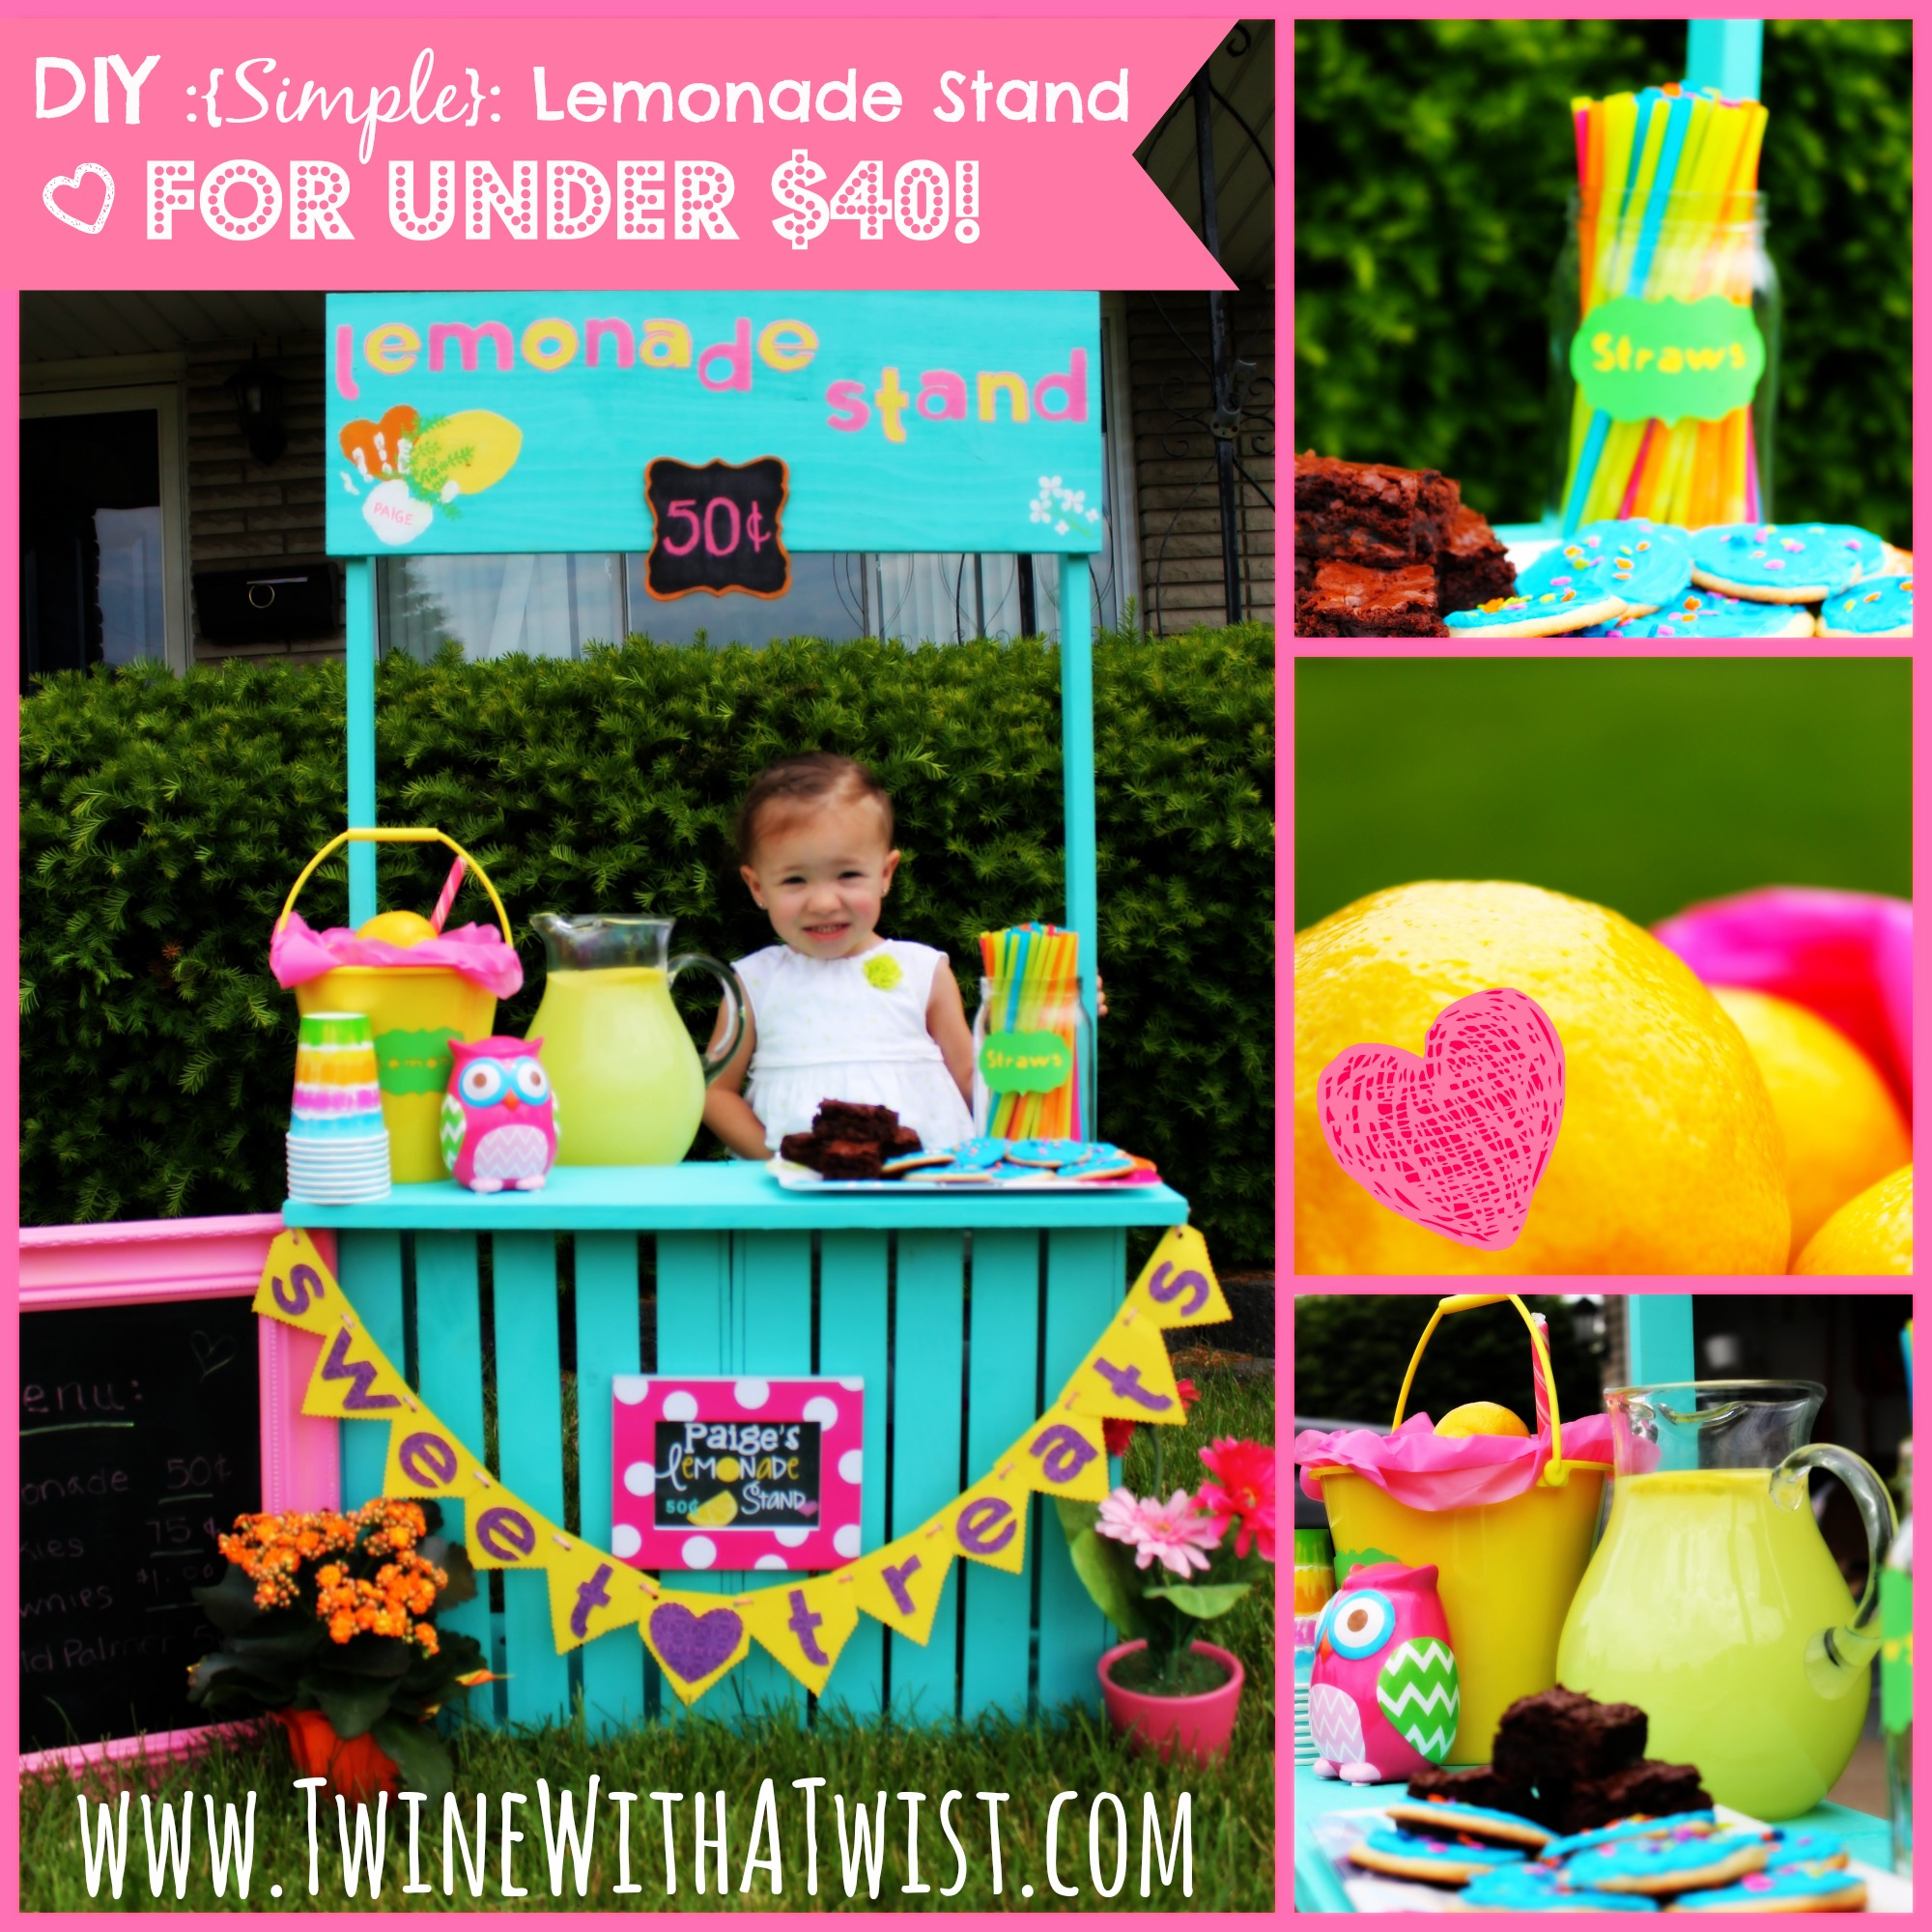 diy simple lemonade stand under 40 guest post